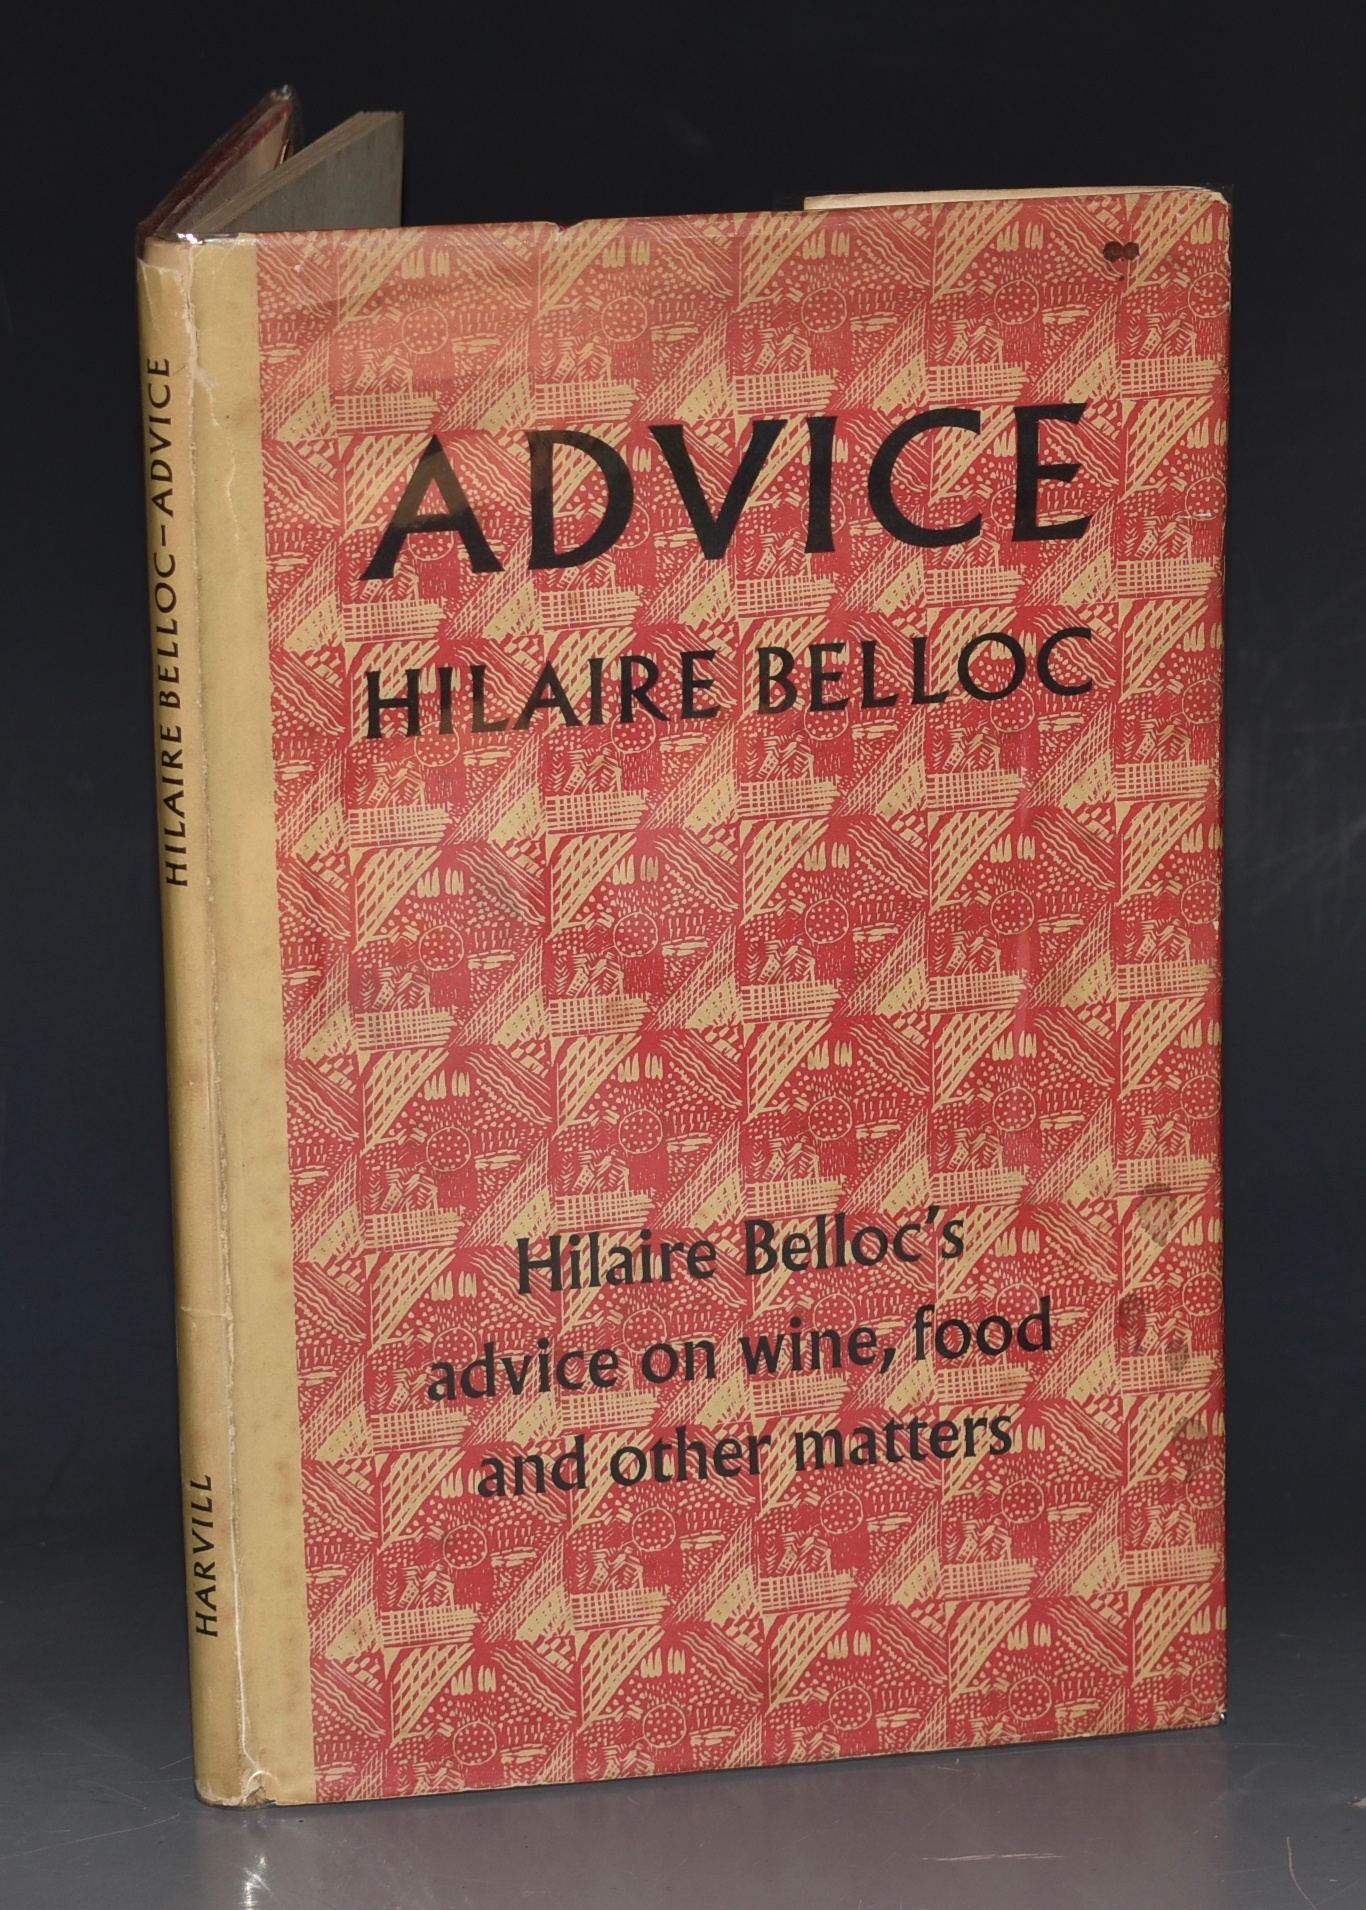 Image for Advice. Hilaire Belloc's advice on wine, food and other matters. Preface by Evelyn Waugh.